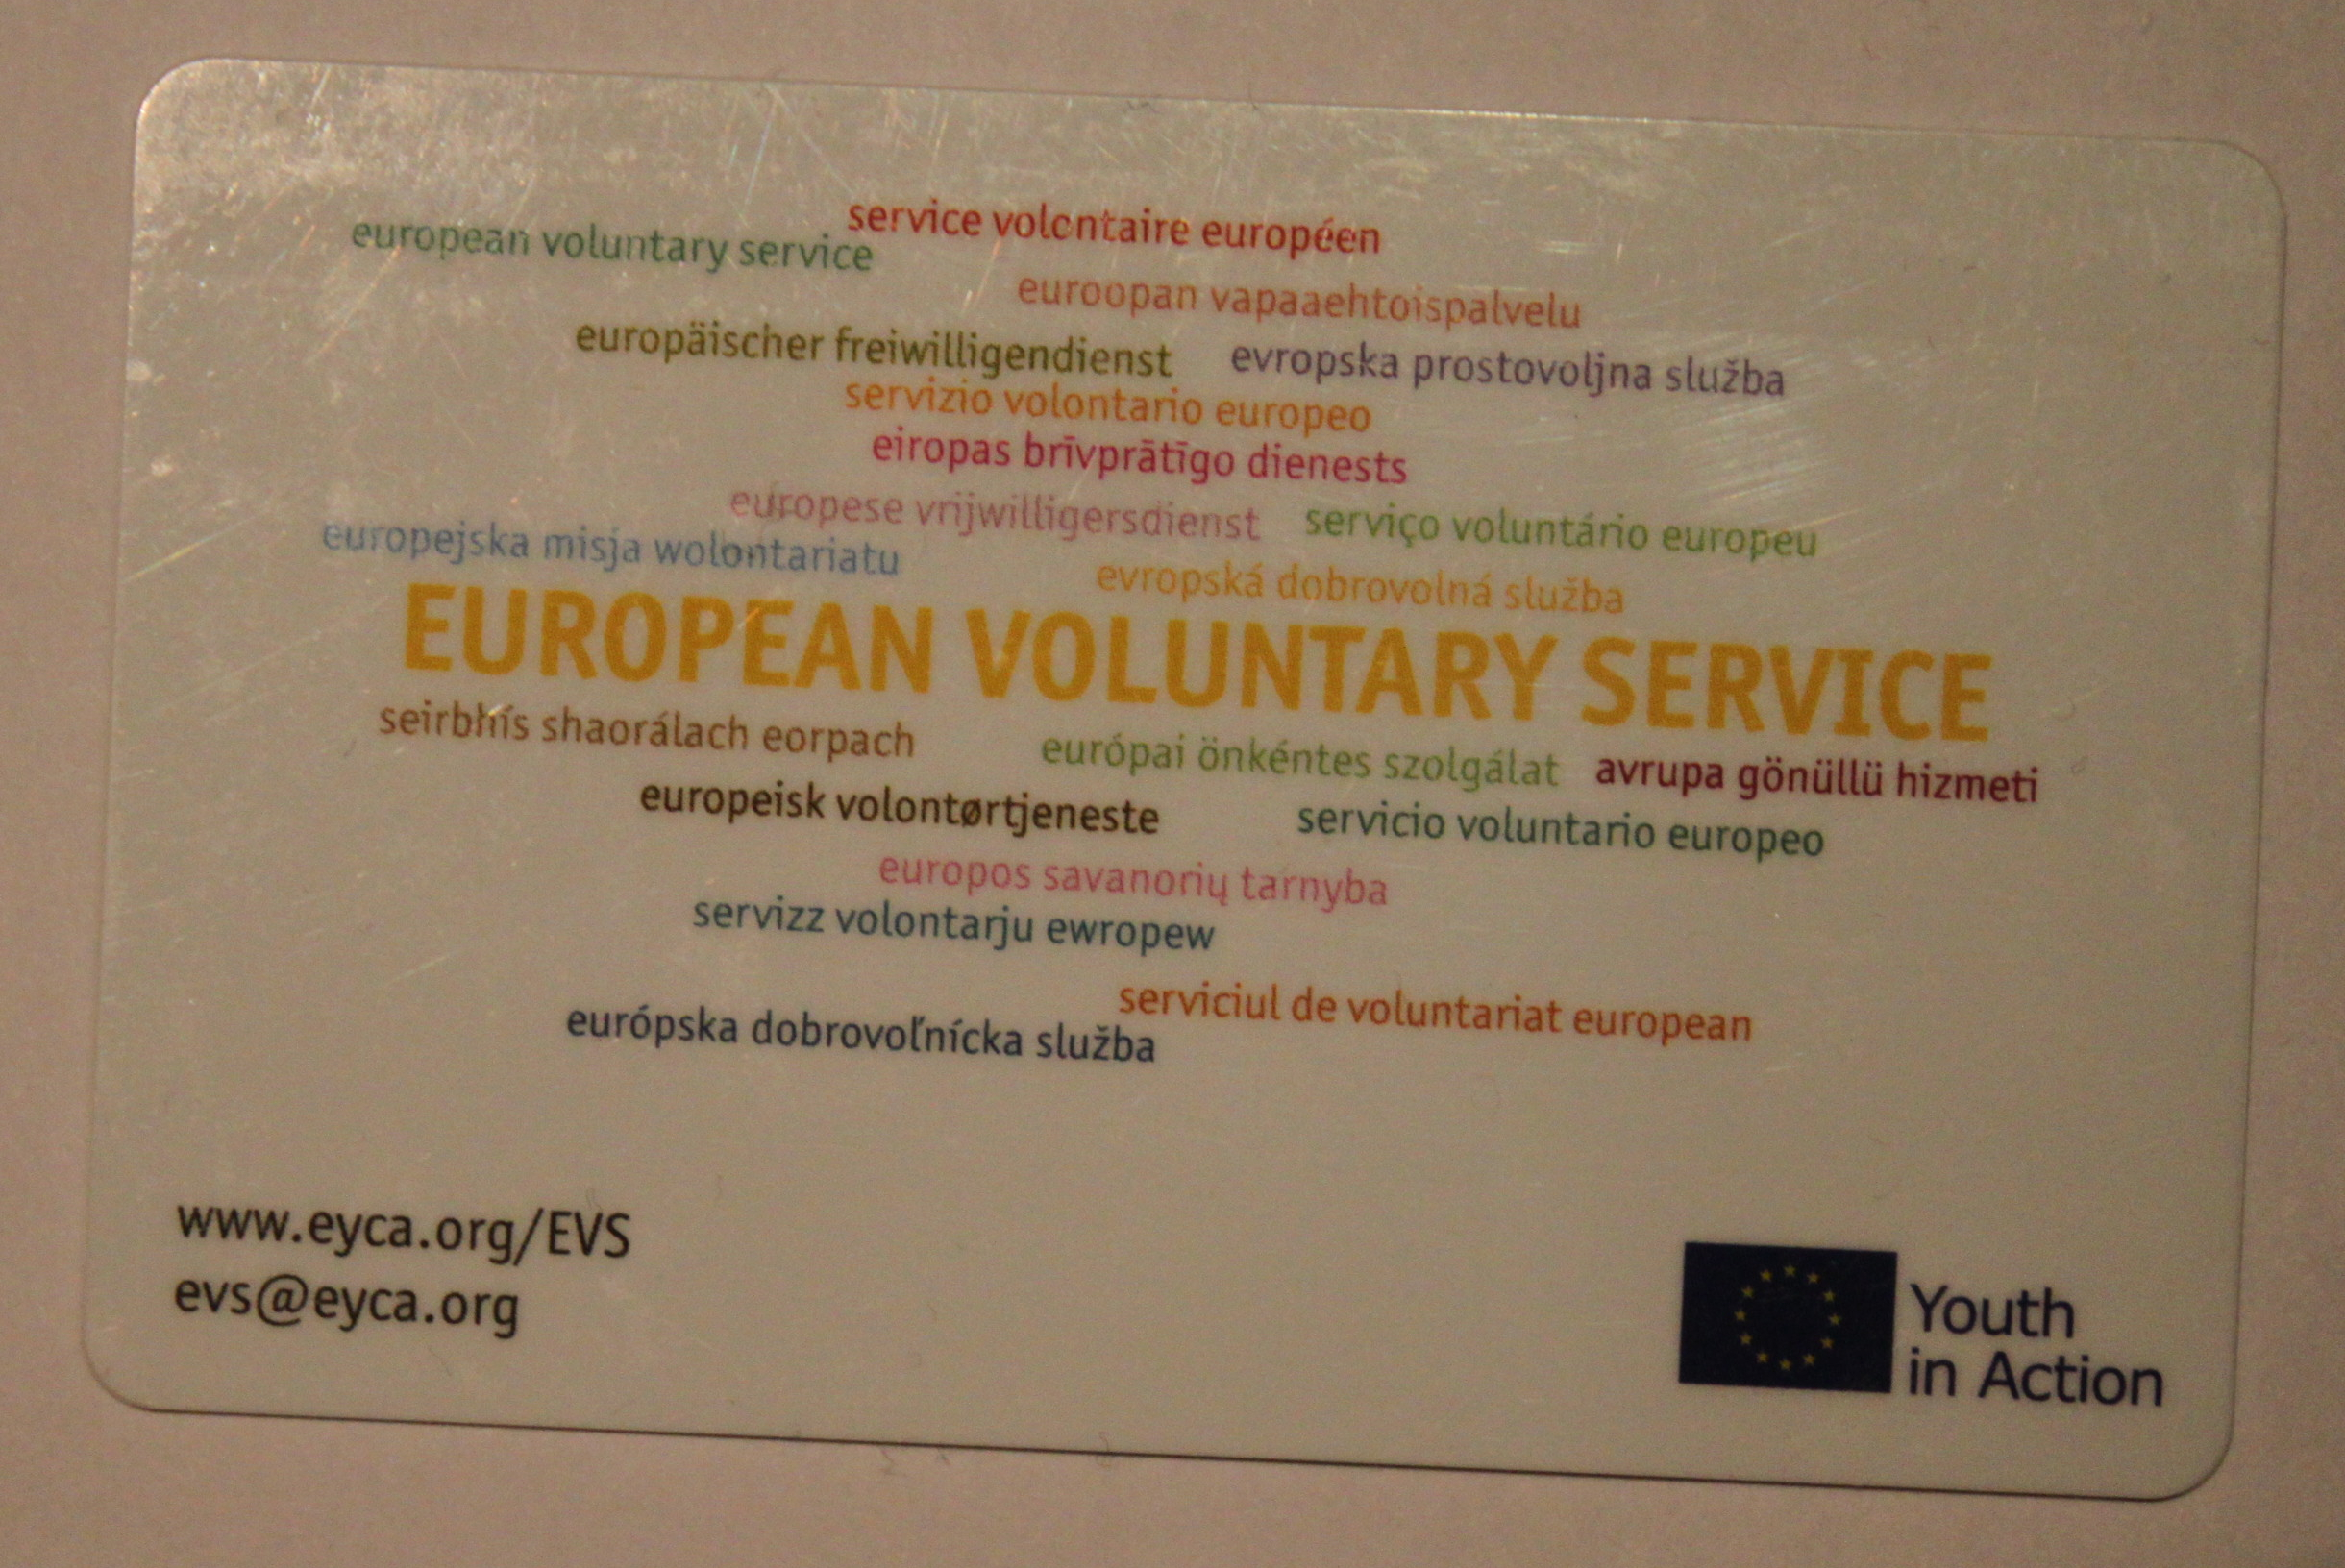 European Voluntary Service - Wikipedia